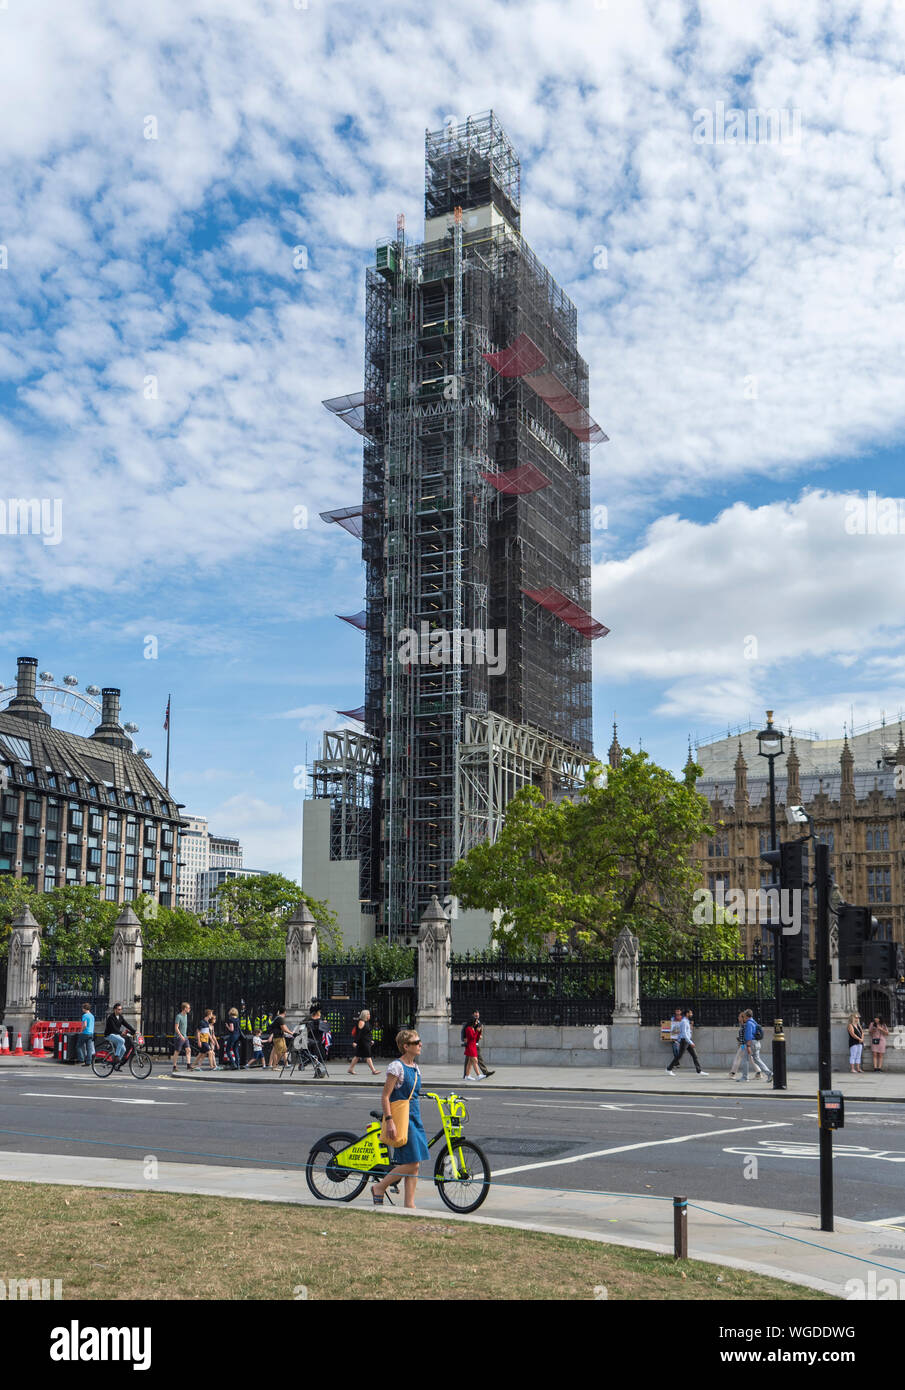 Scaffolding around Elizabeth Tower for restoration, renovations, repairs at Palace of Westminster, London, UK. Big Ben London. Covered in scaffolding. Stock Photo